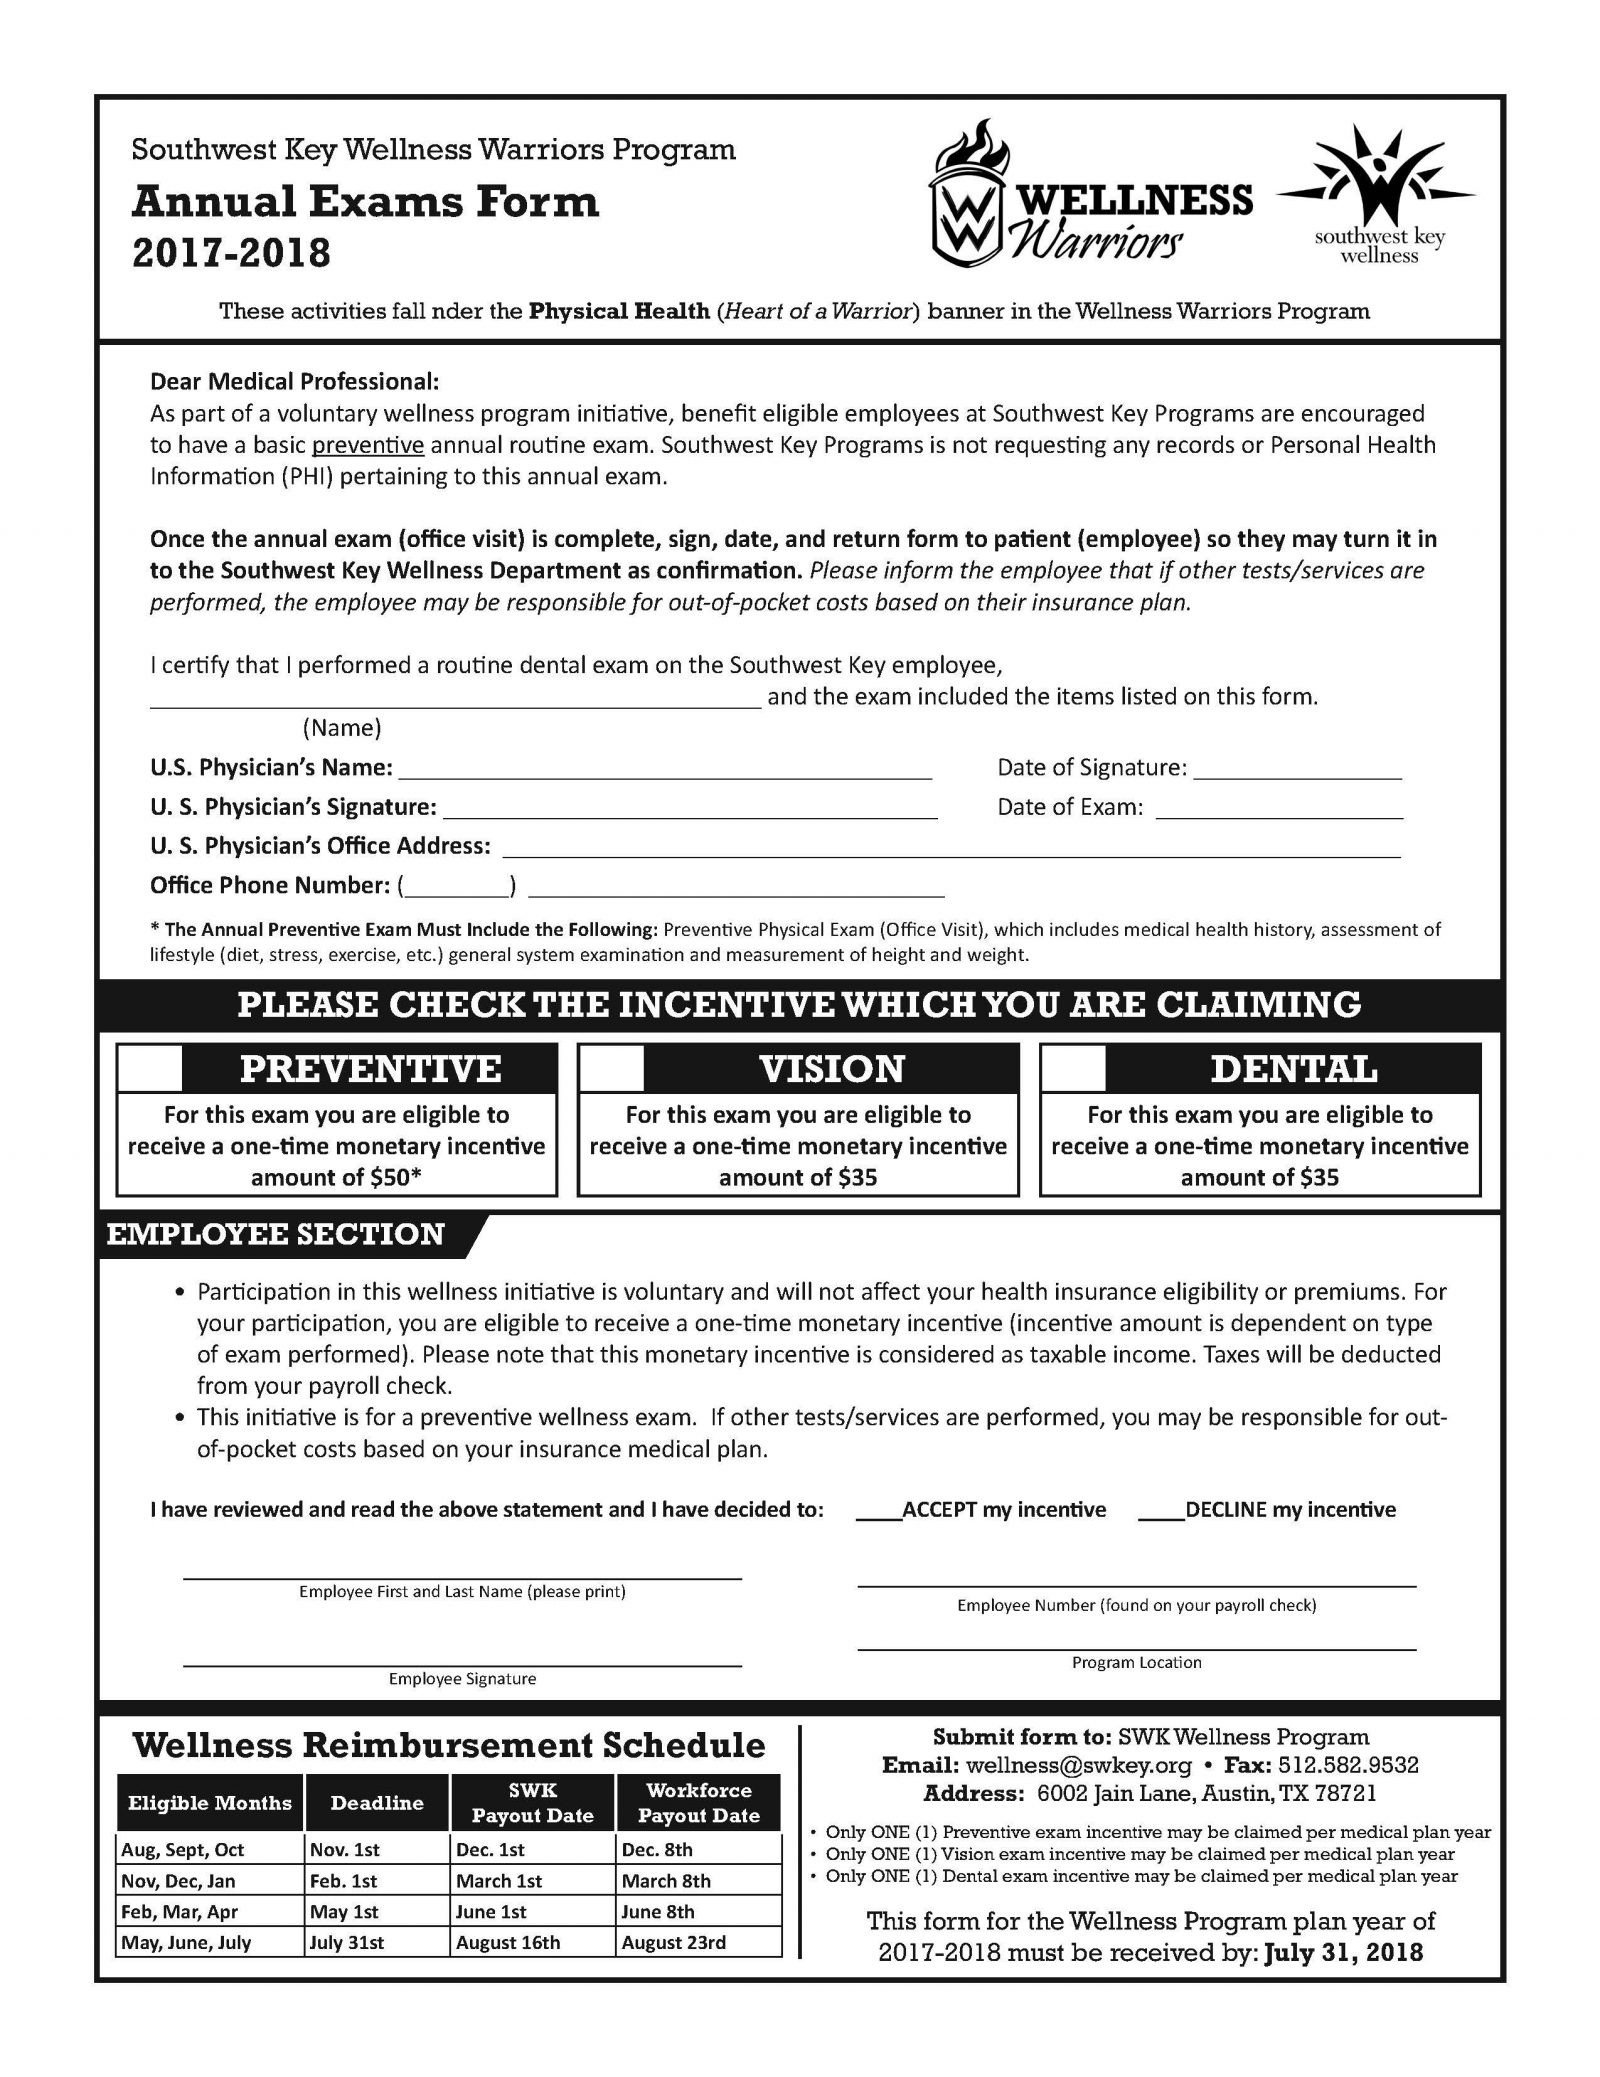 Form 8962 Instructions 2018 Inspirational New Employee Forms Hire 11 Blank Application For Irs Employmentagen